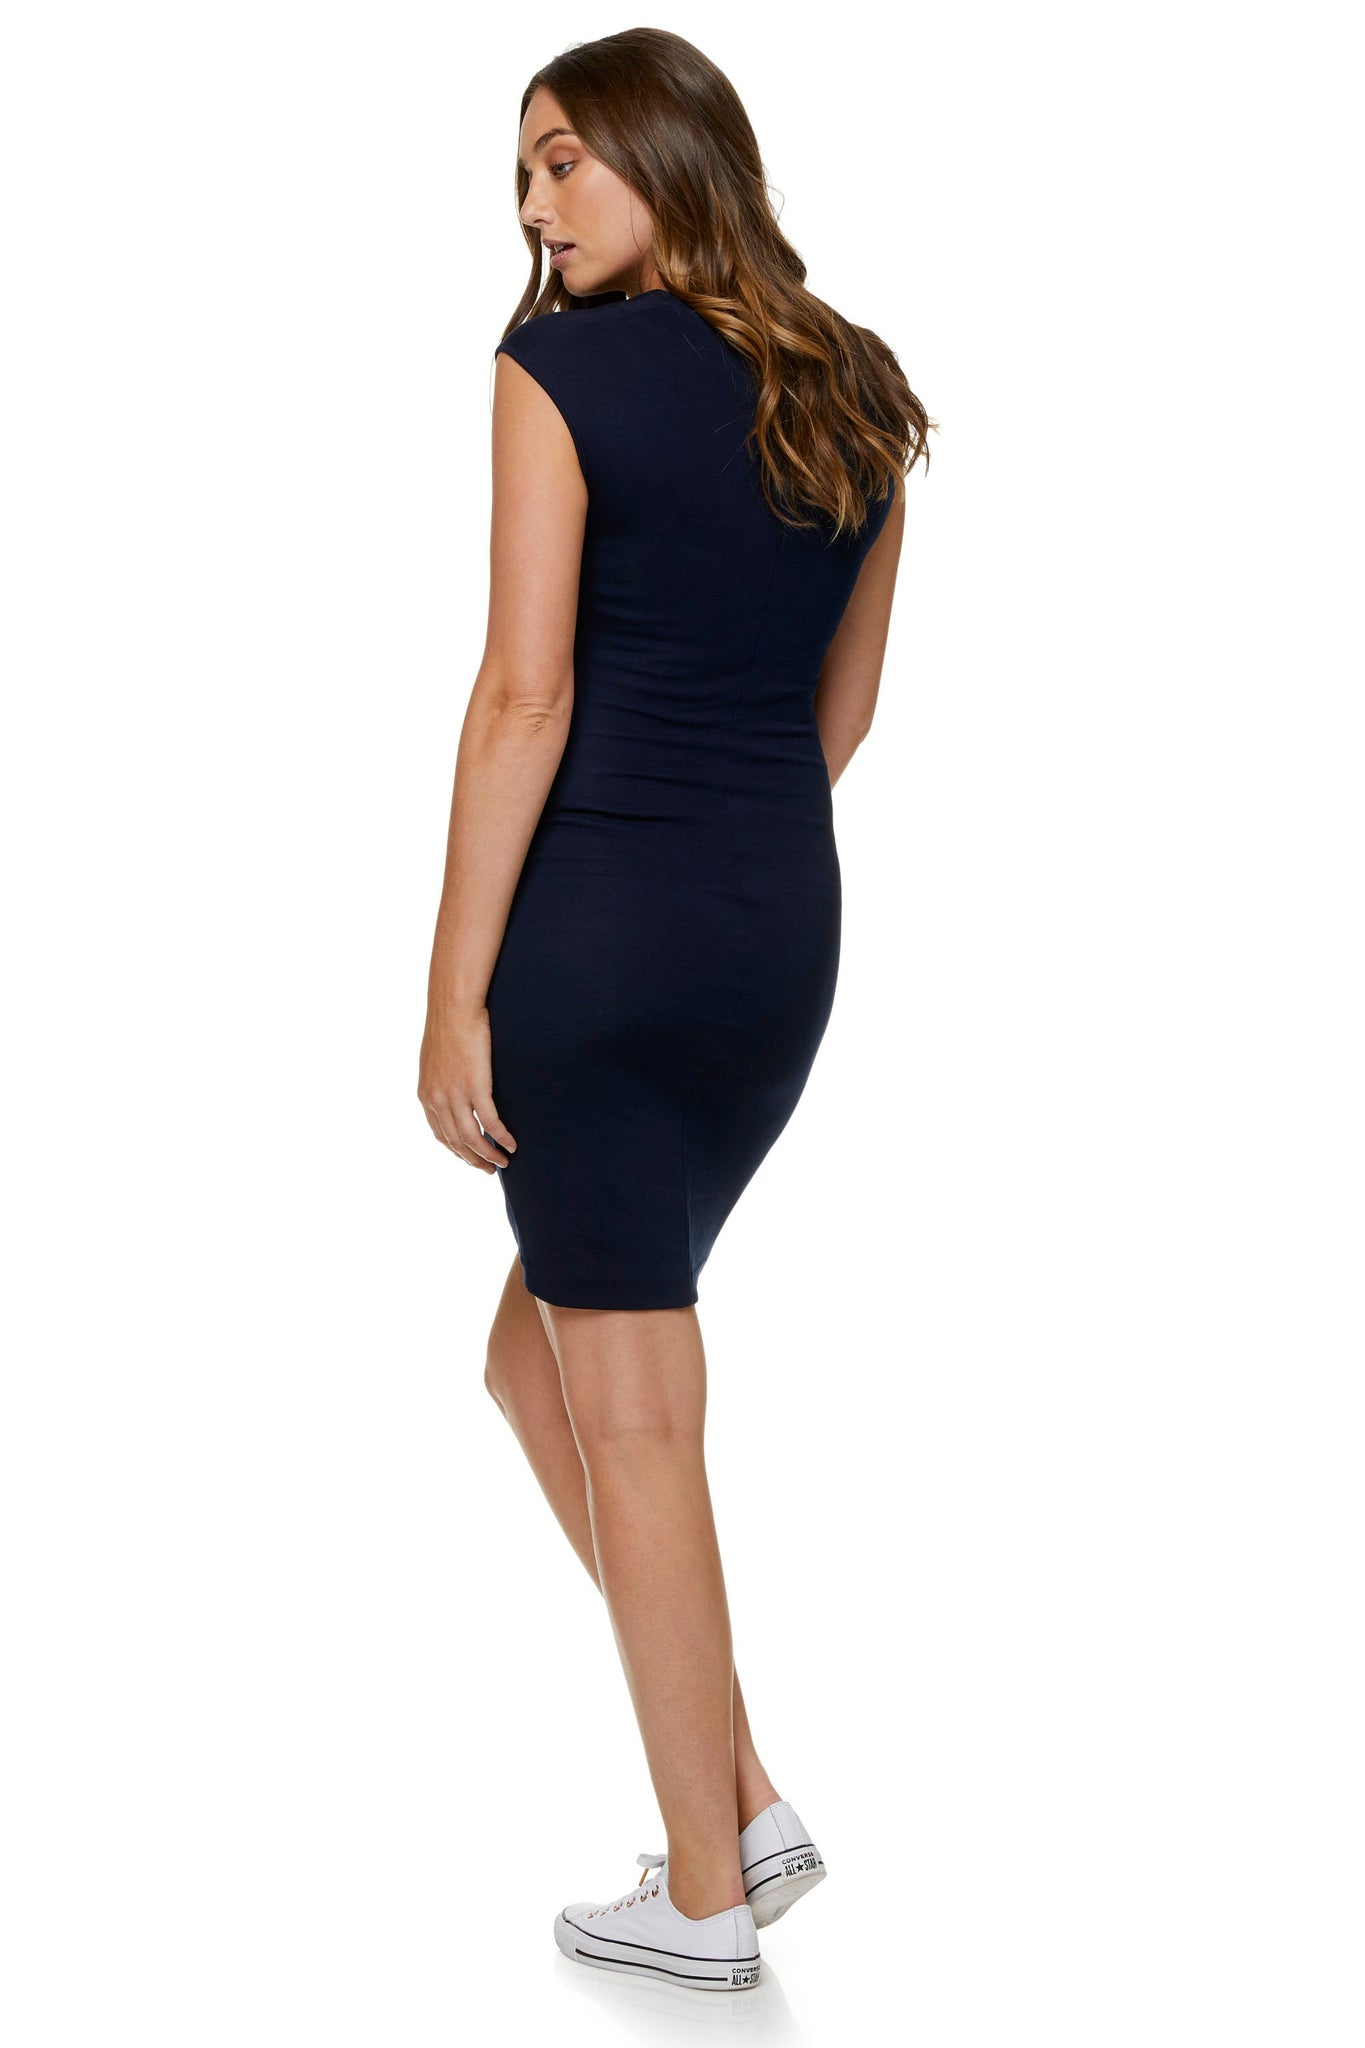 Navy Maternity Dress - Work Maternity Dress 7